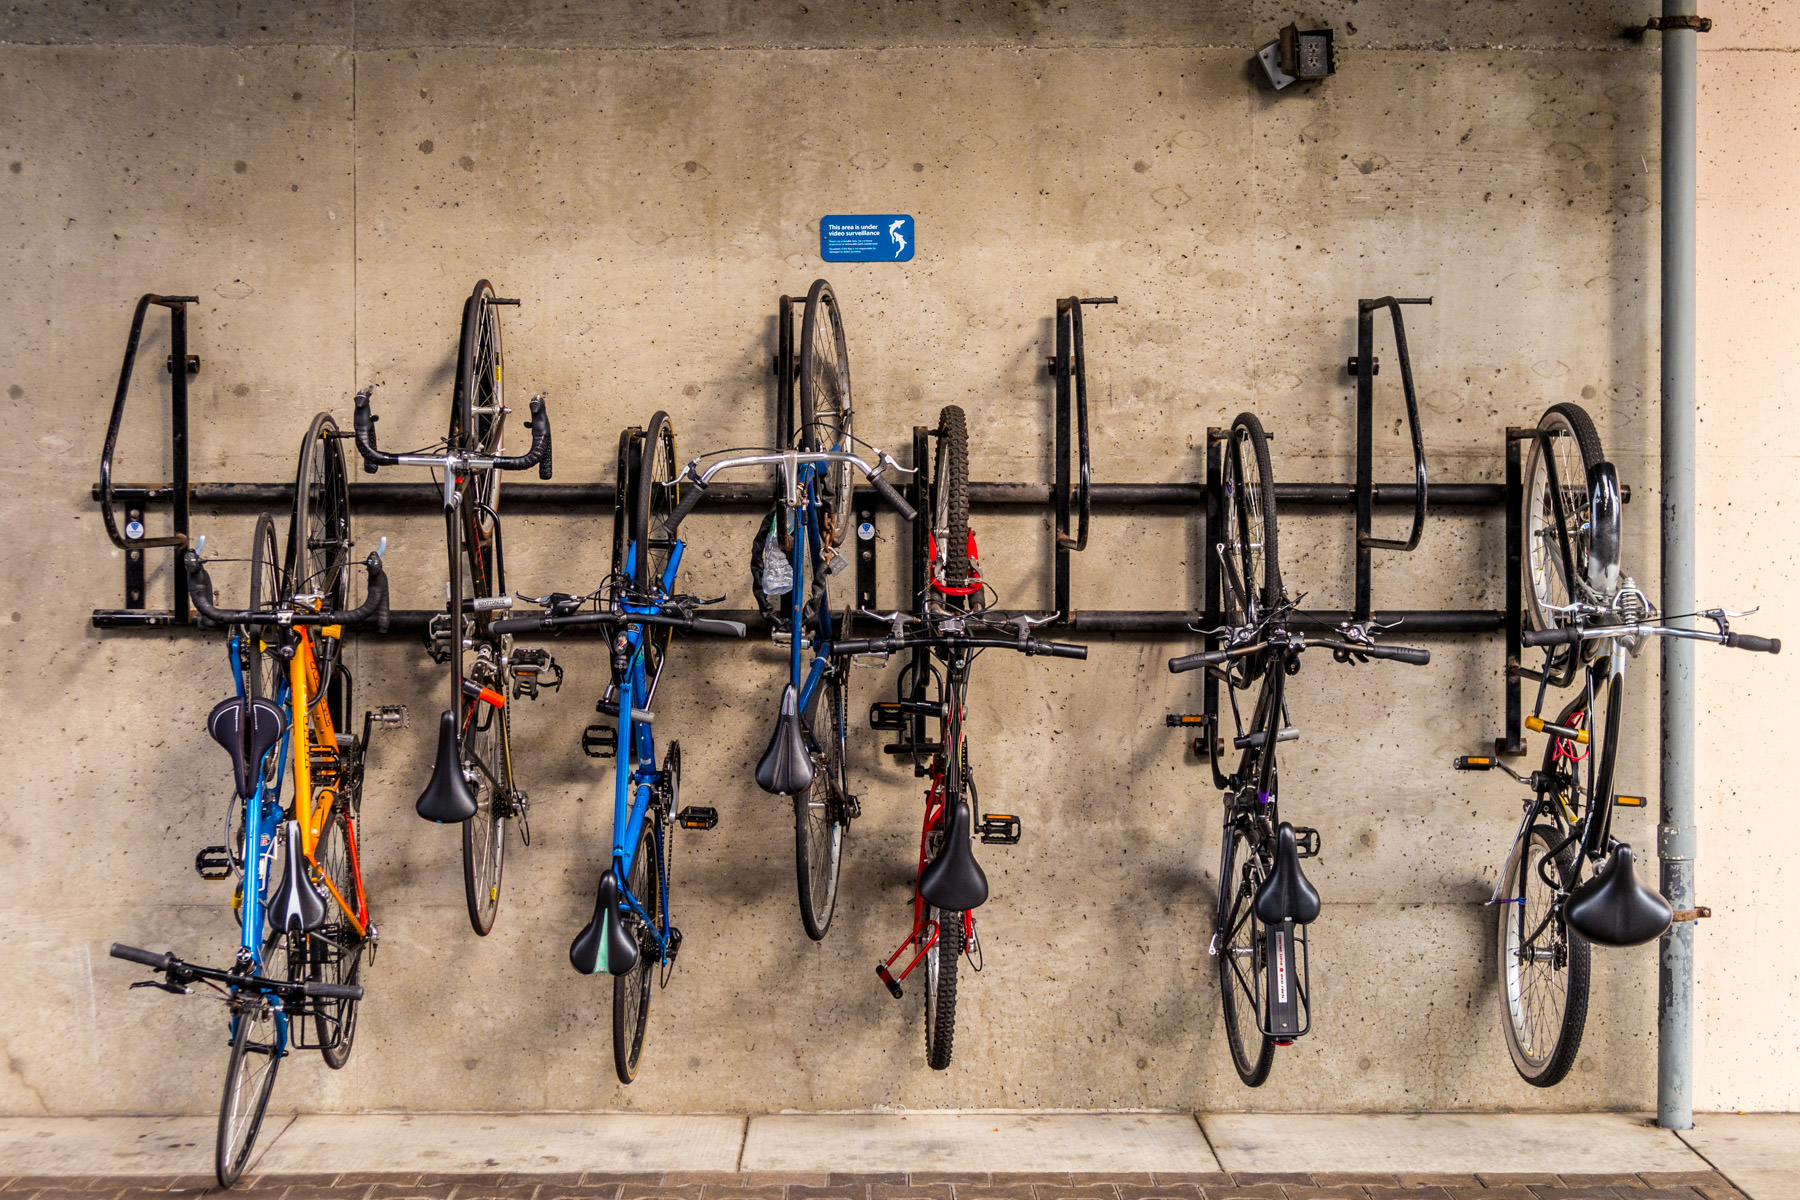 Bicycles mounted on a vertical bike rack at San Francisco's Pier 39.